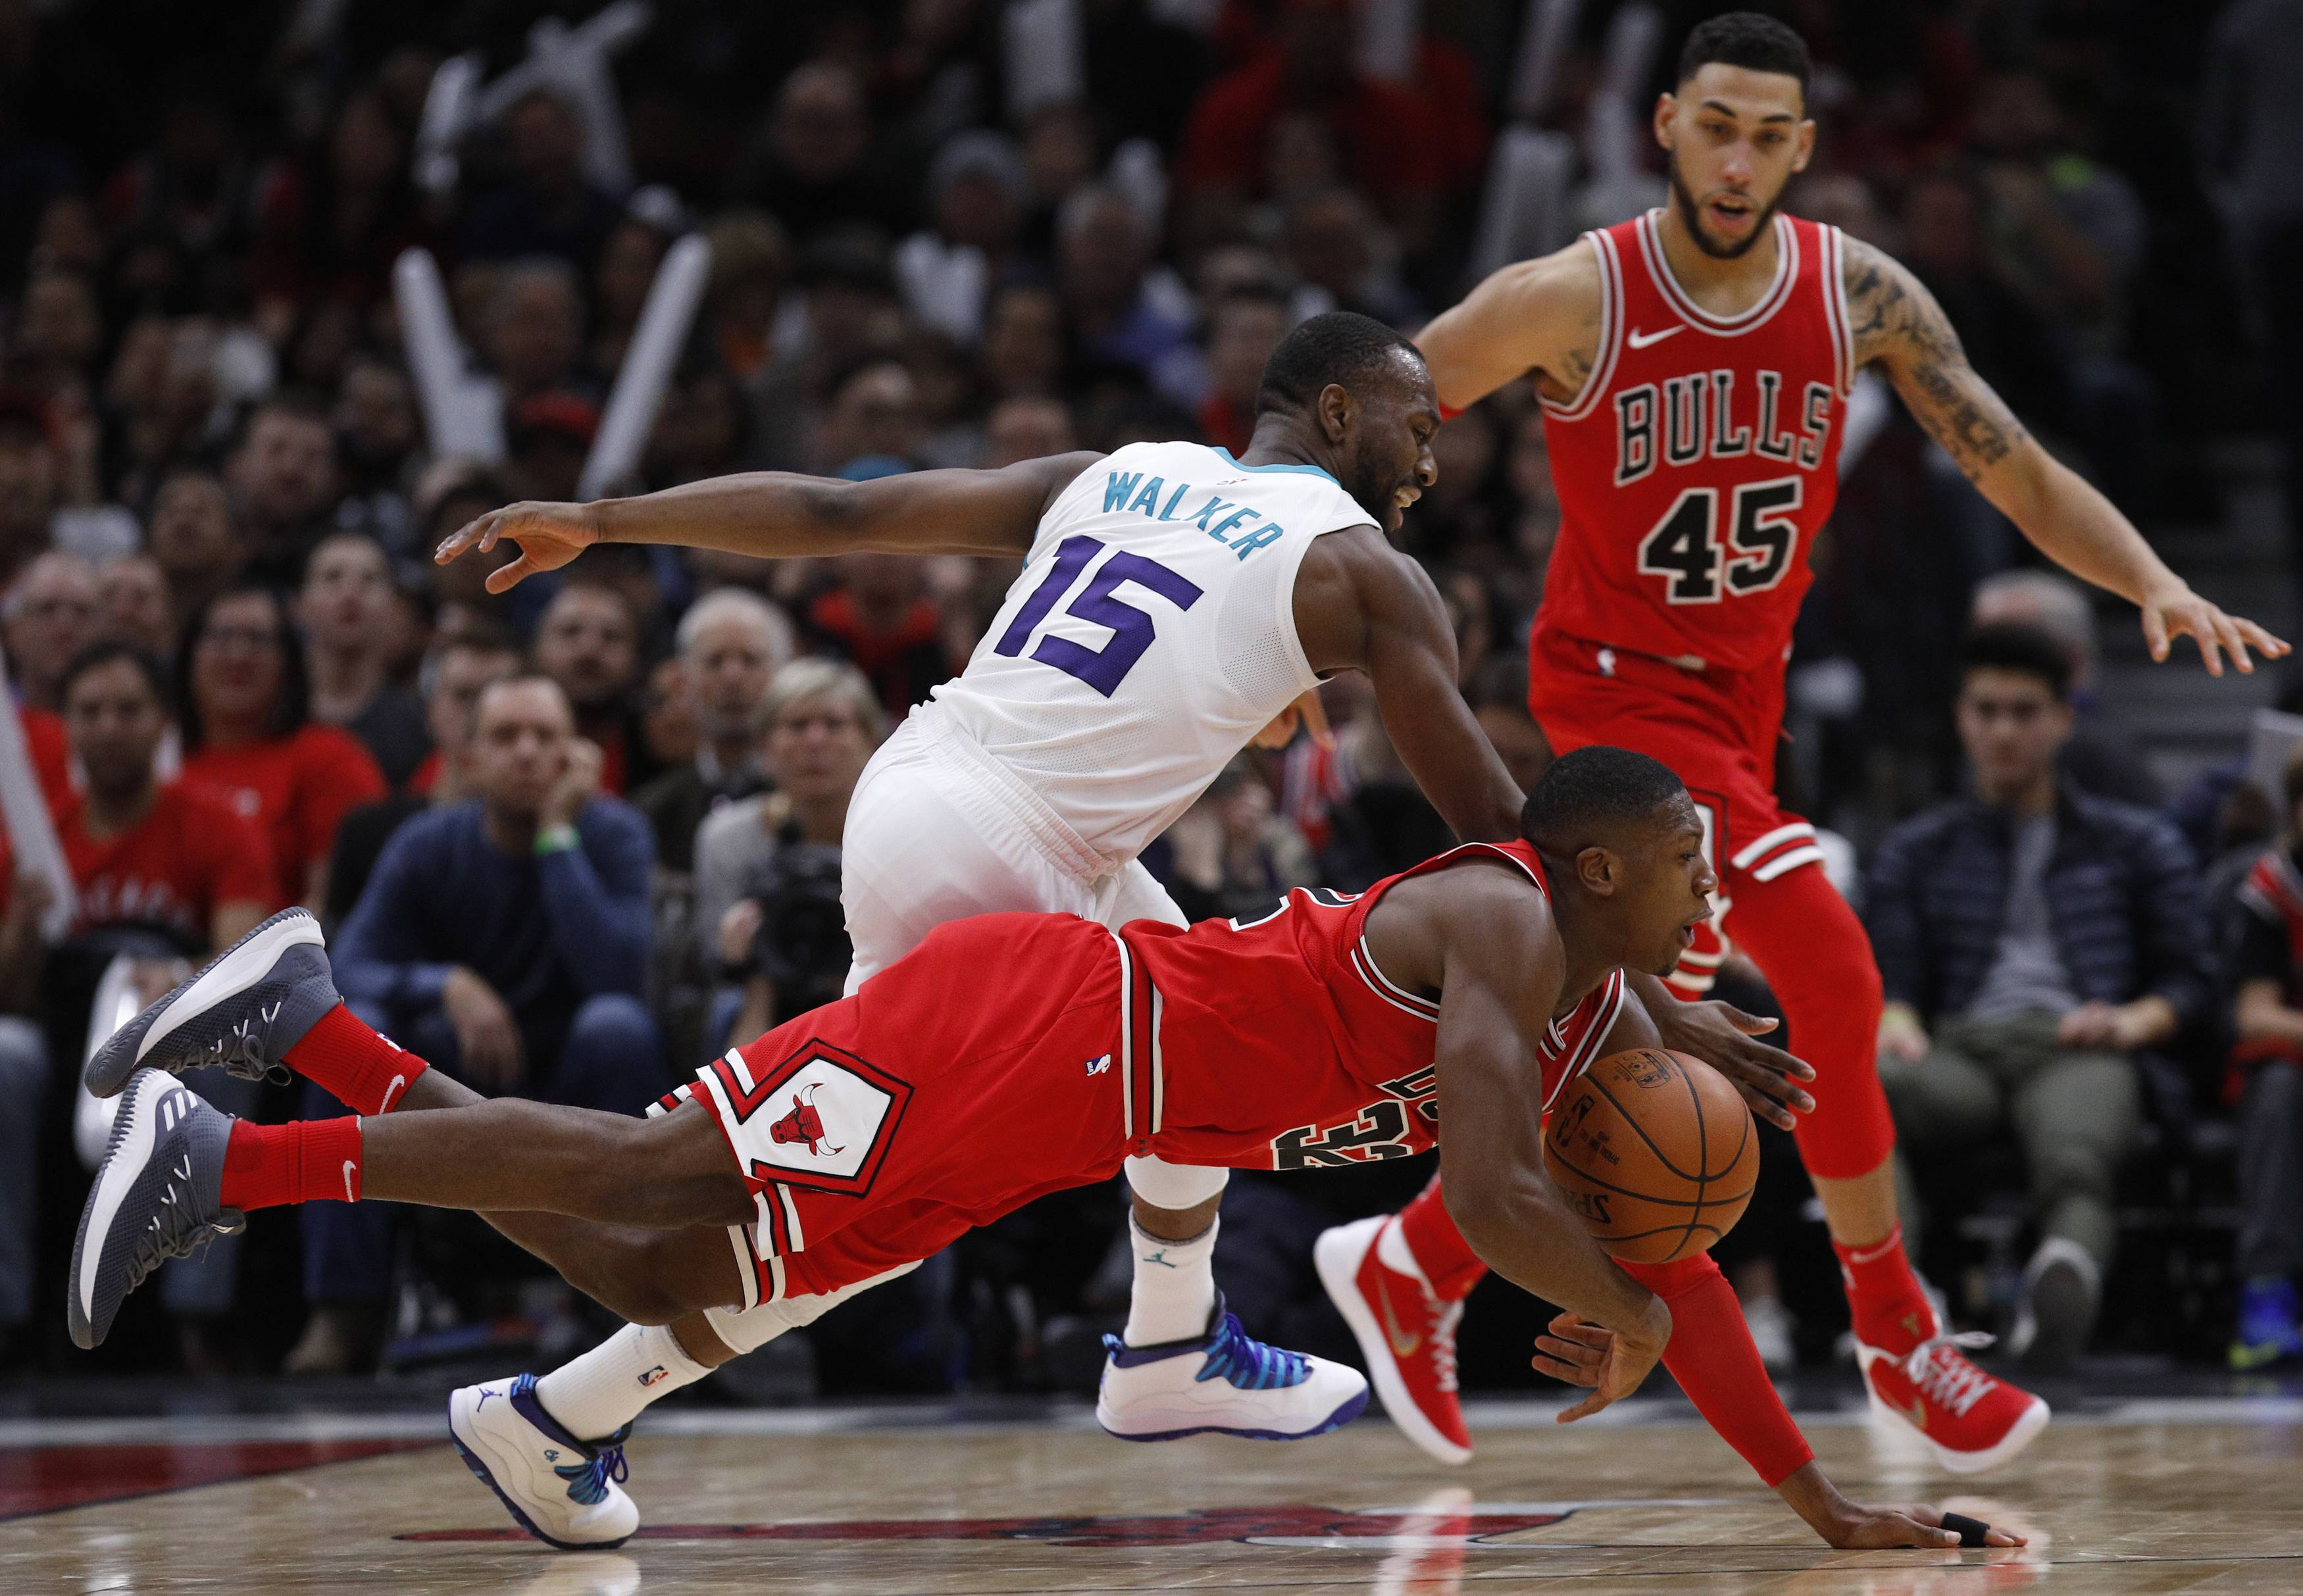 Chicago Bulls' Kris Dunn dives for the ball against Charlotte Hornets' Kemba Walker (15) as Bulls' Denzel Valentine (45) looks on during the second half of an NBA basketball game Friday, Nov. 17, 2017, in Chicago. (AP Photo/Jim Young)